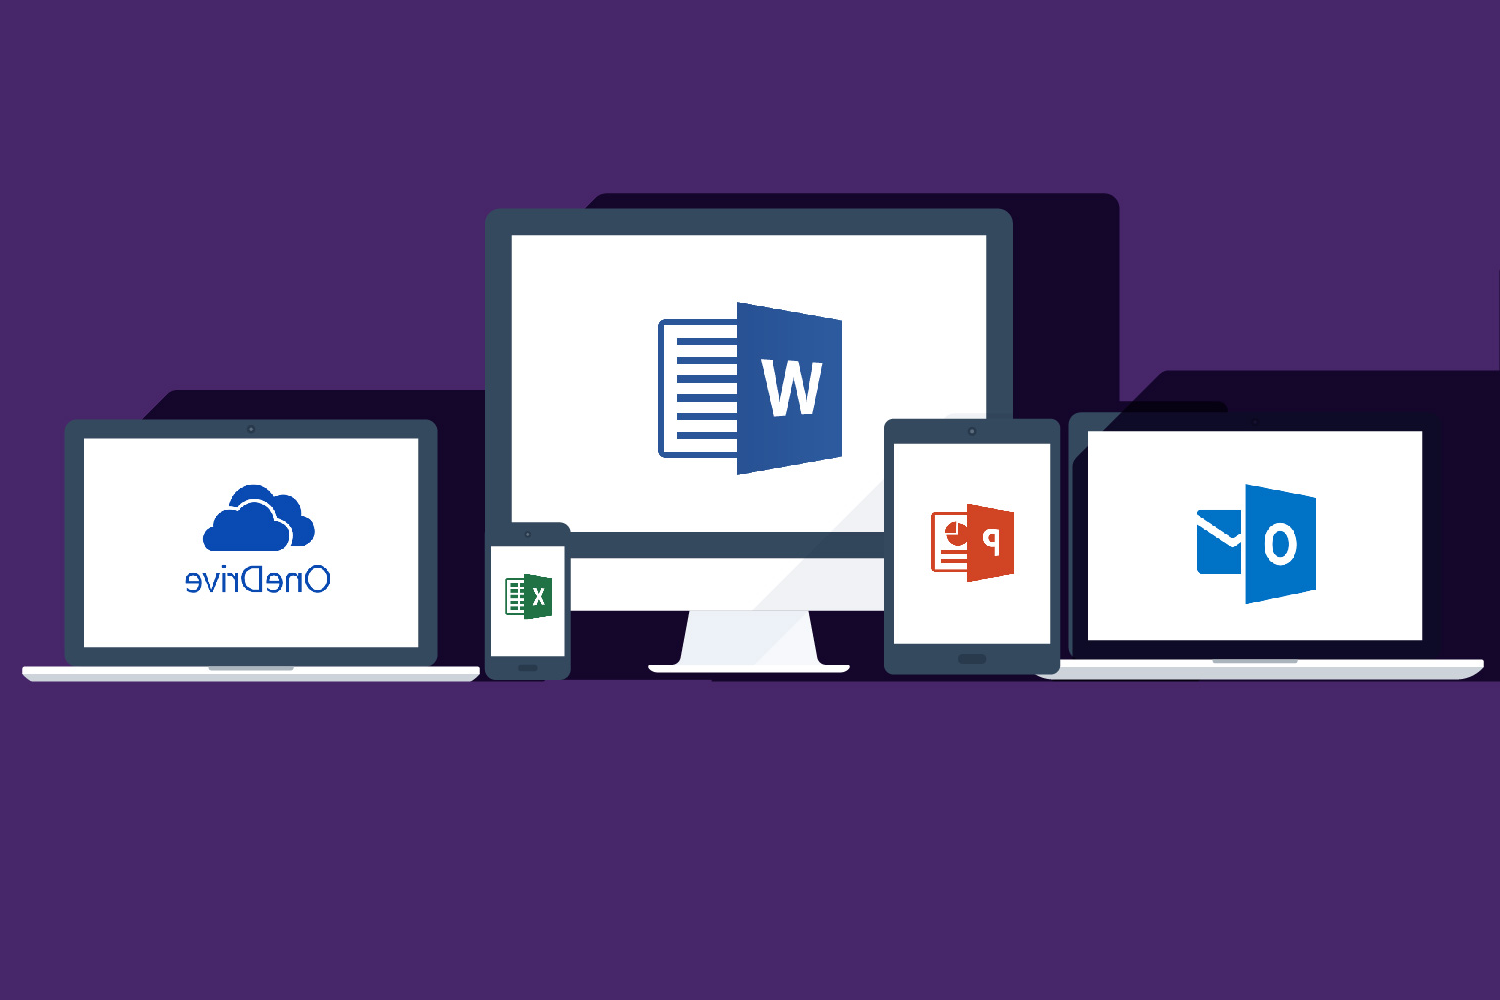 Image of Microsoft Office ProPlus 365 icons on different devices